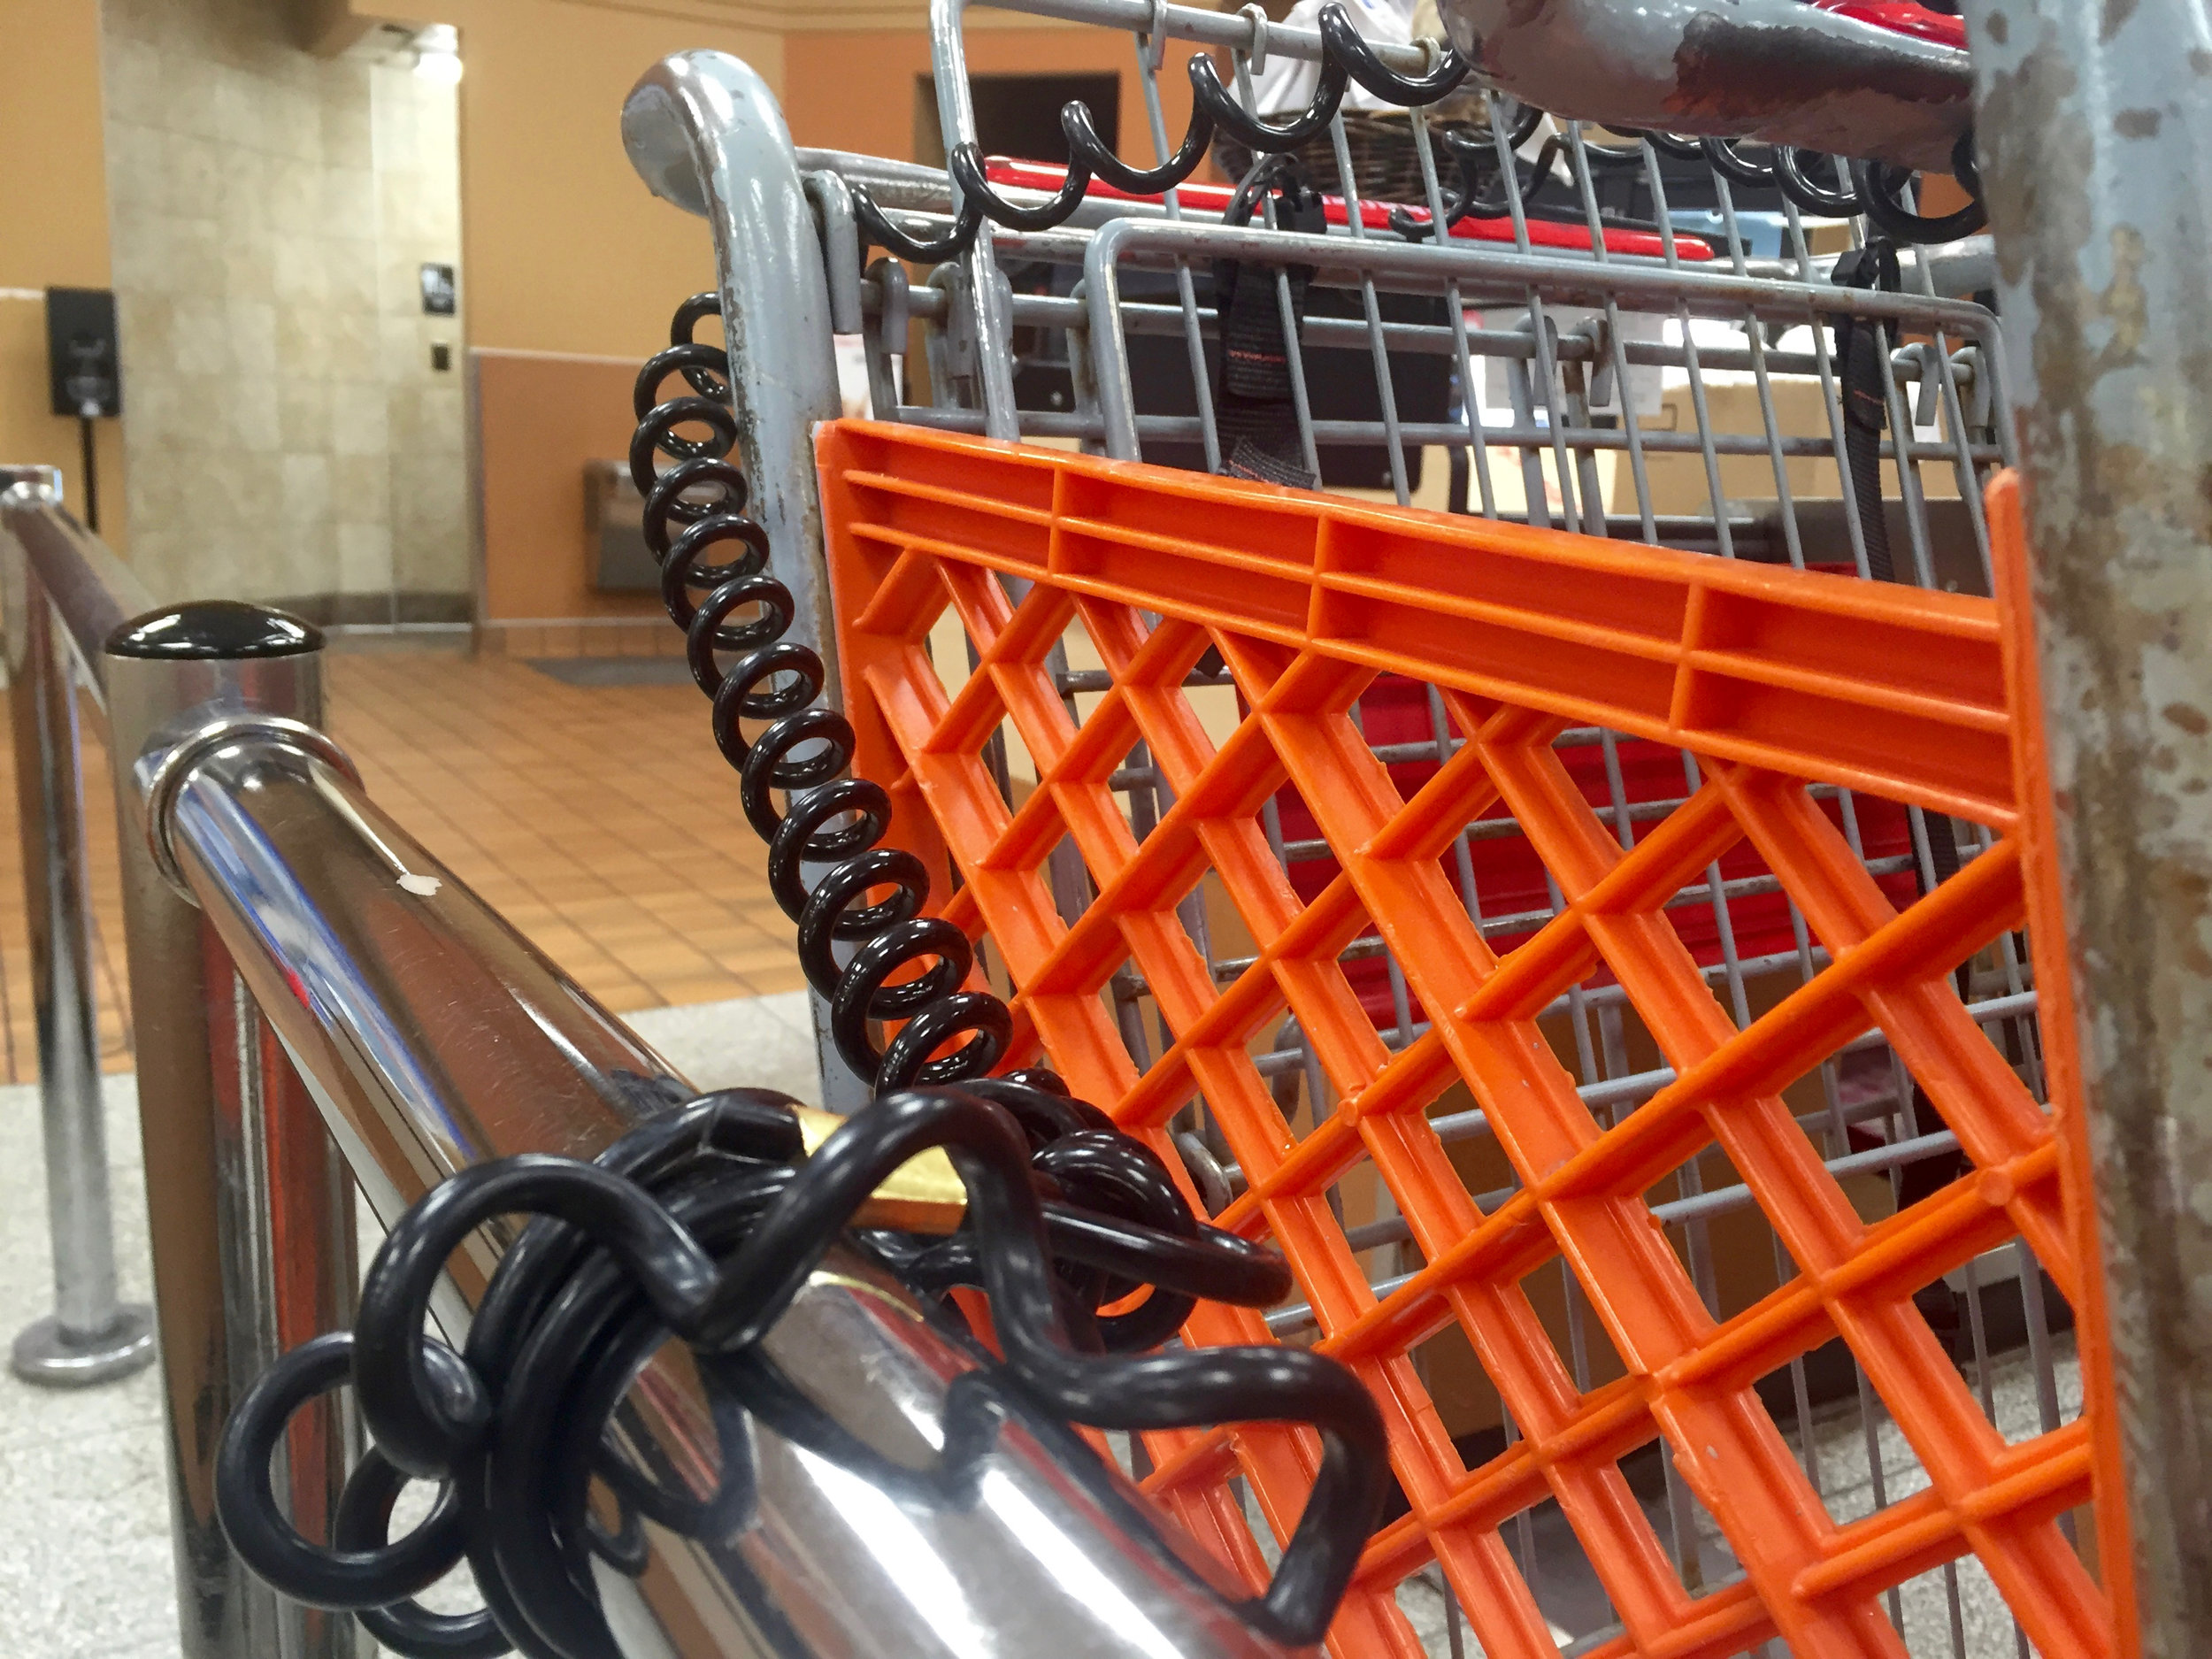 Shopping Carts as Barricade - 3.jpg